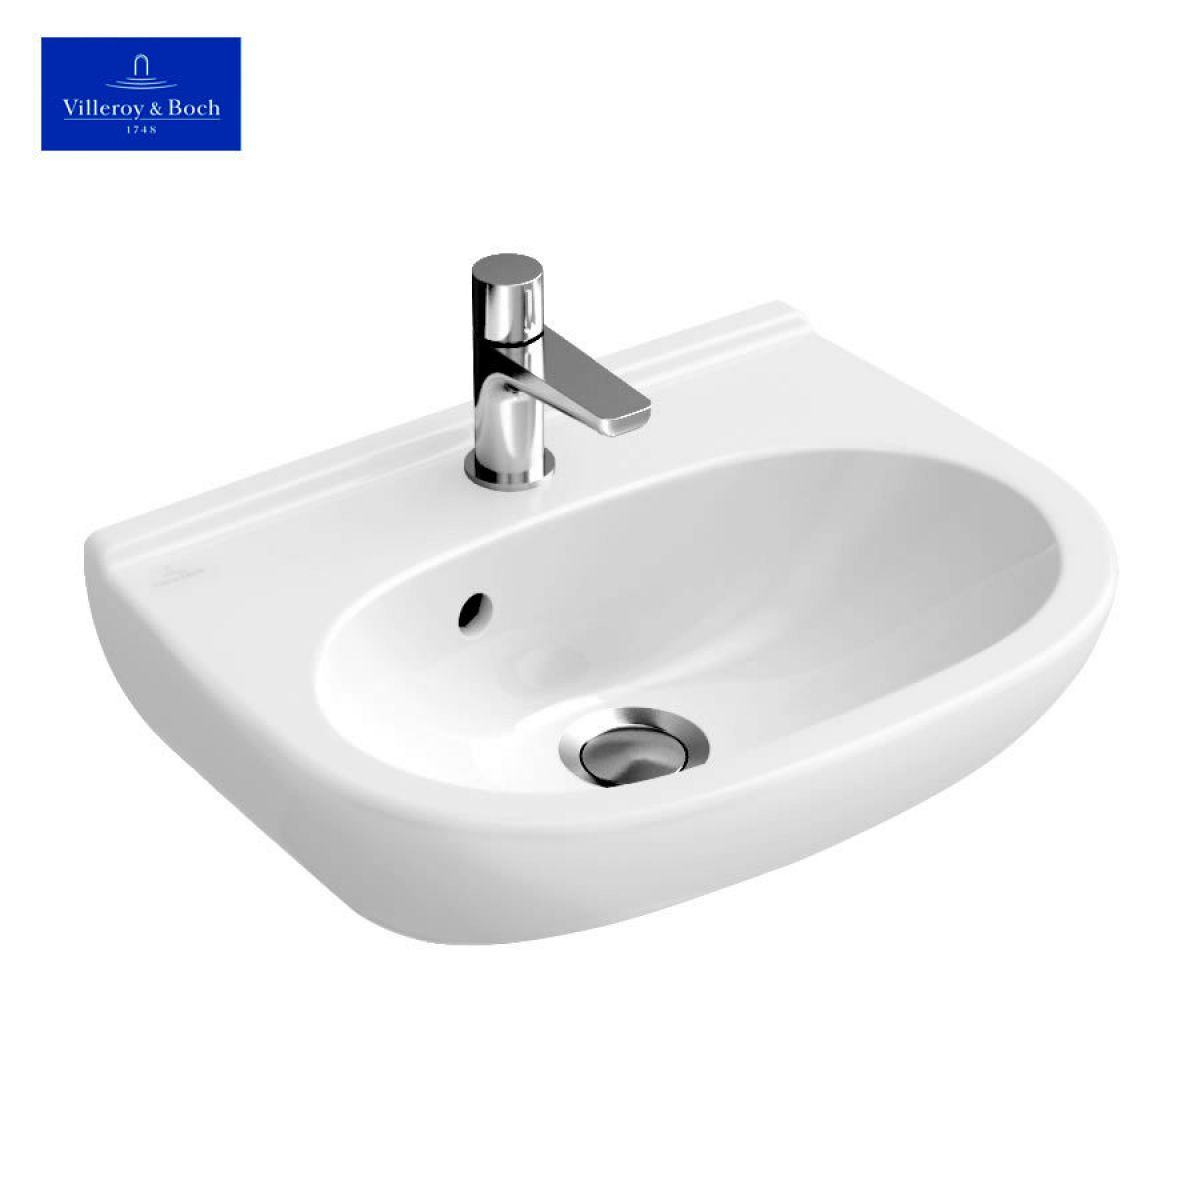 villeroy boch o novo compact handwashbasin uk bathrooms. Black Bedroom Furniture Sets. Home Design Ideas